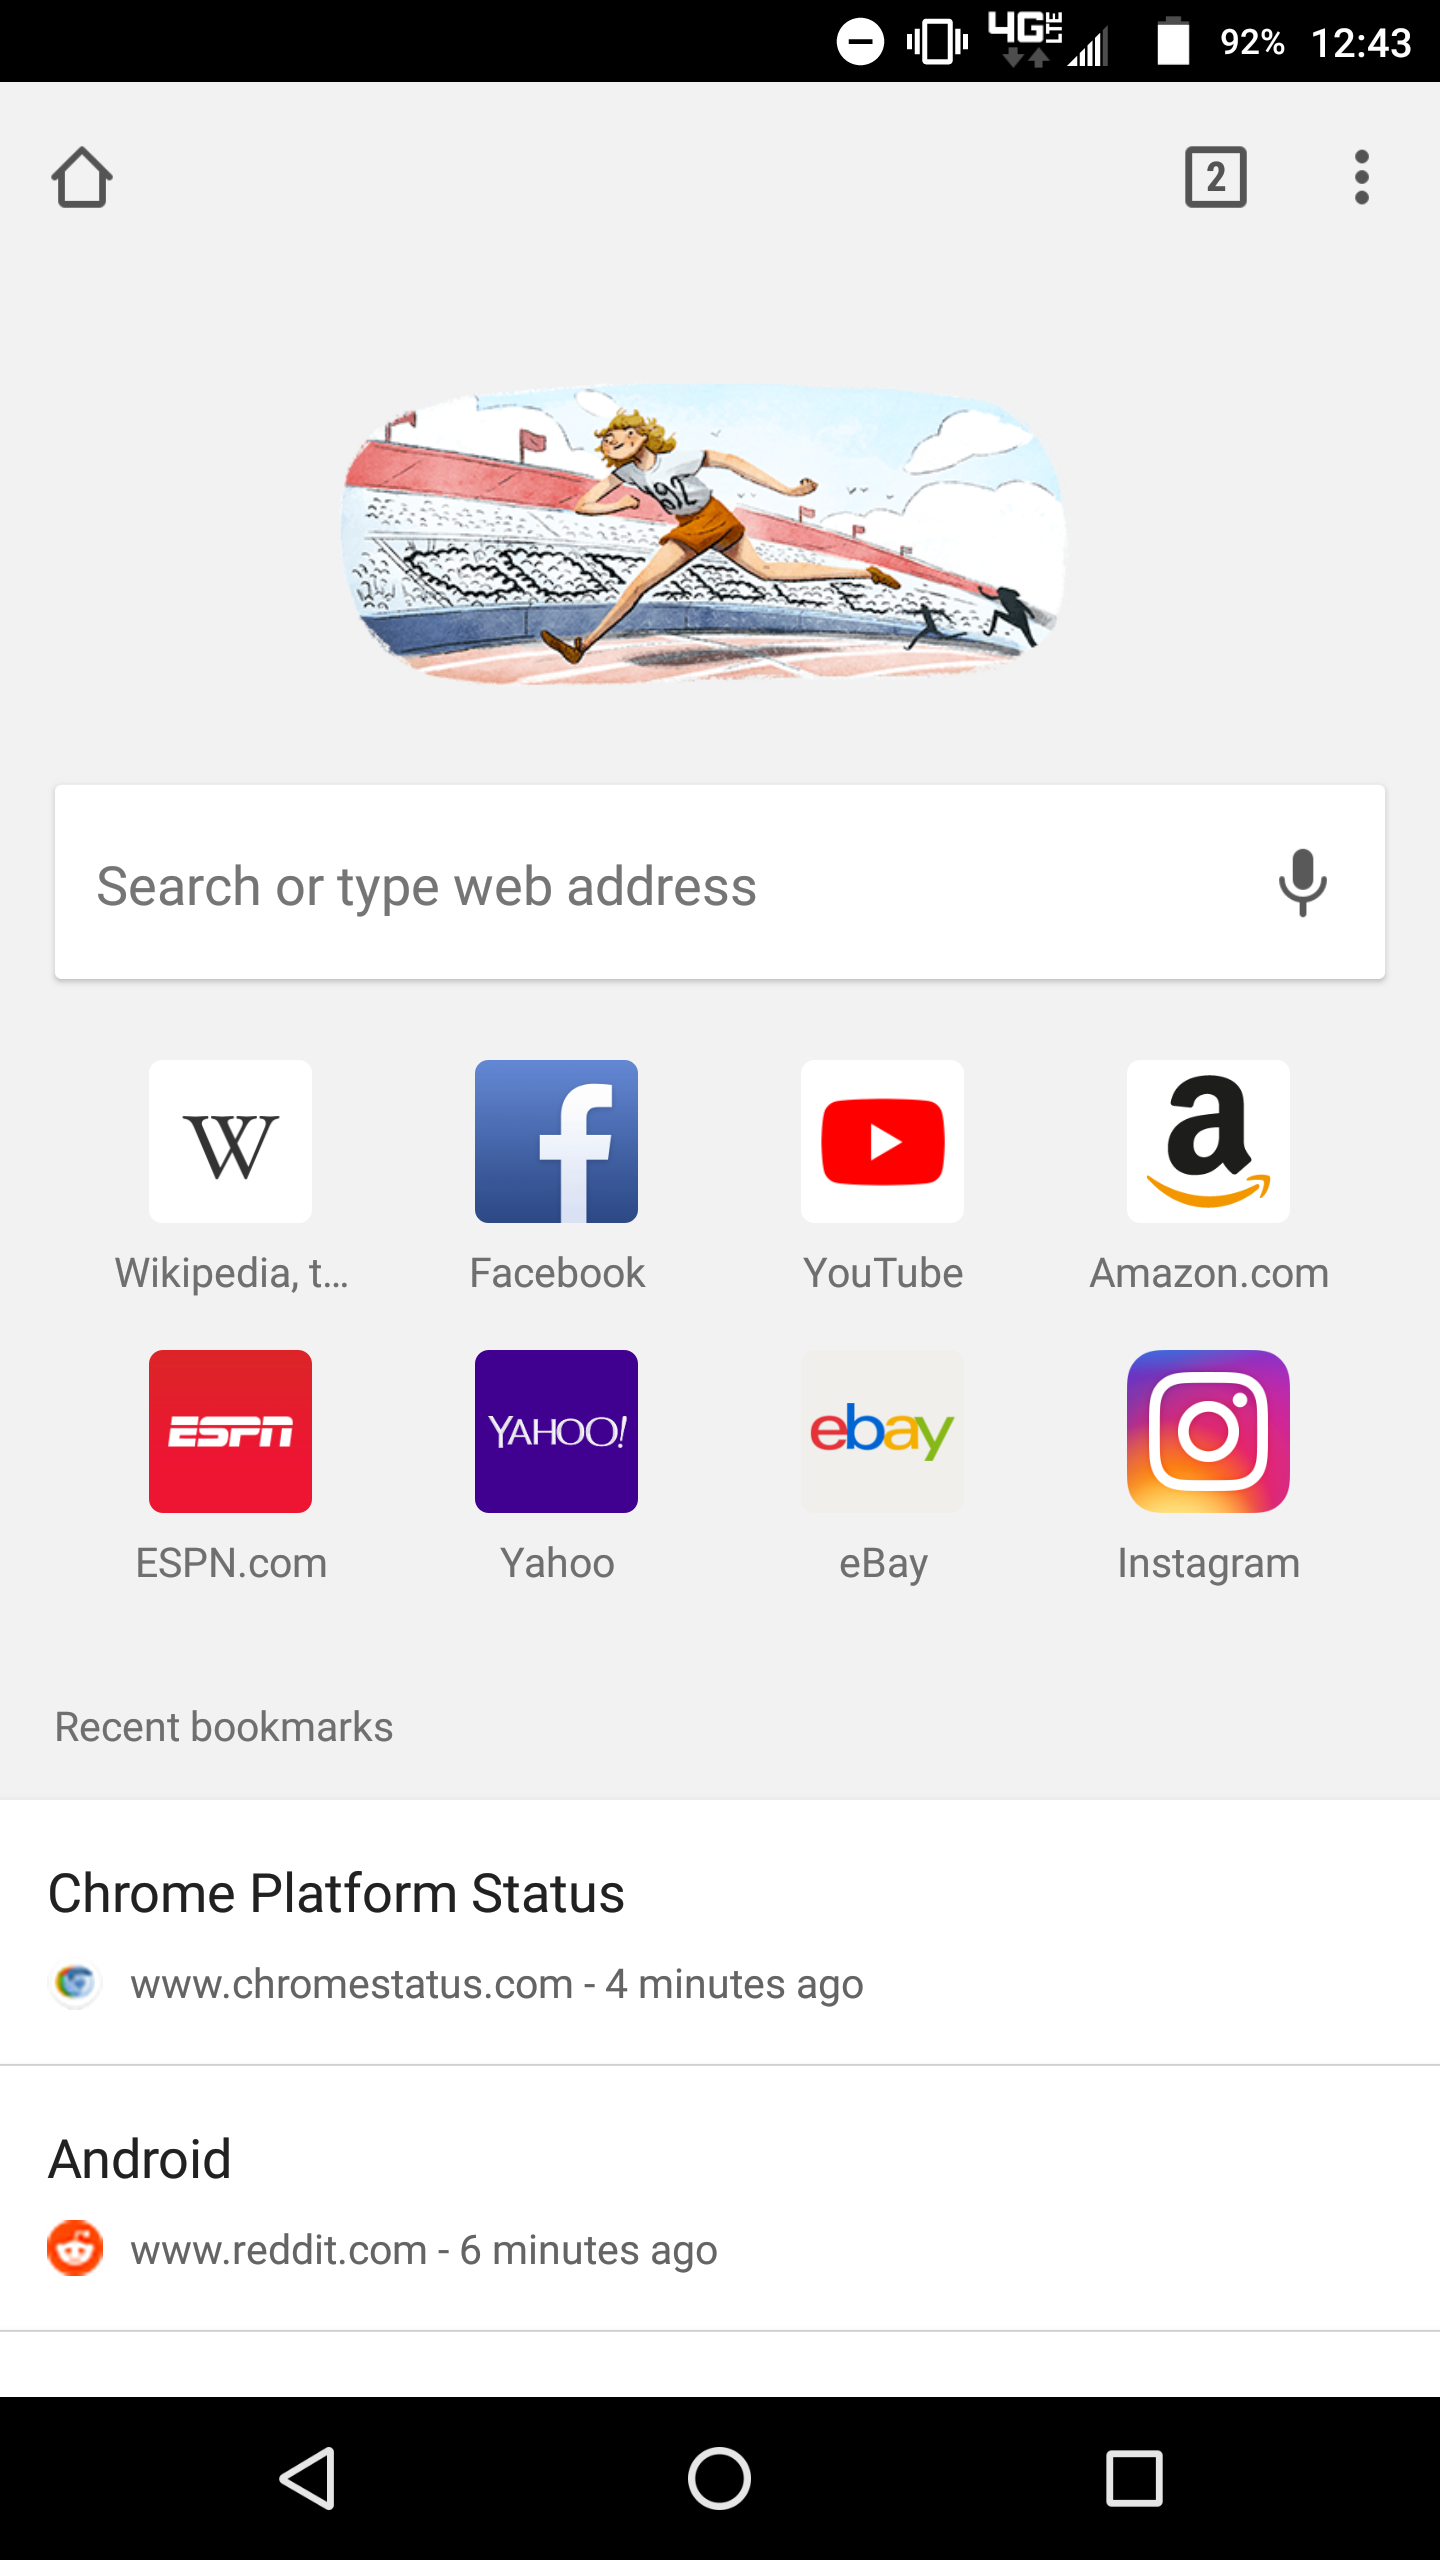 Chrome 67 beta supports new APIs for web AR/VR, device